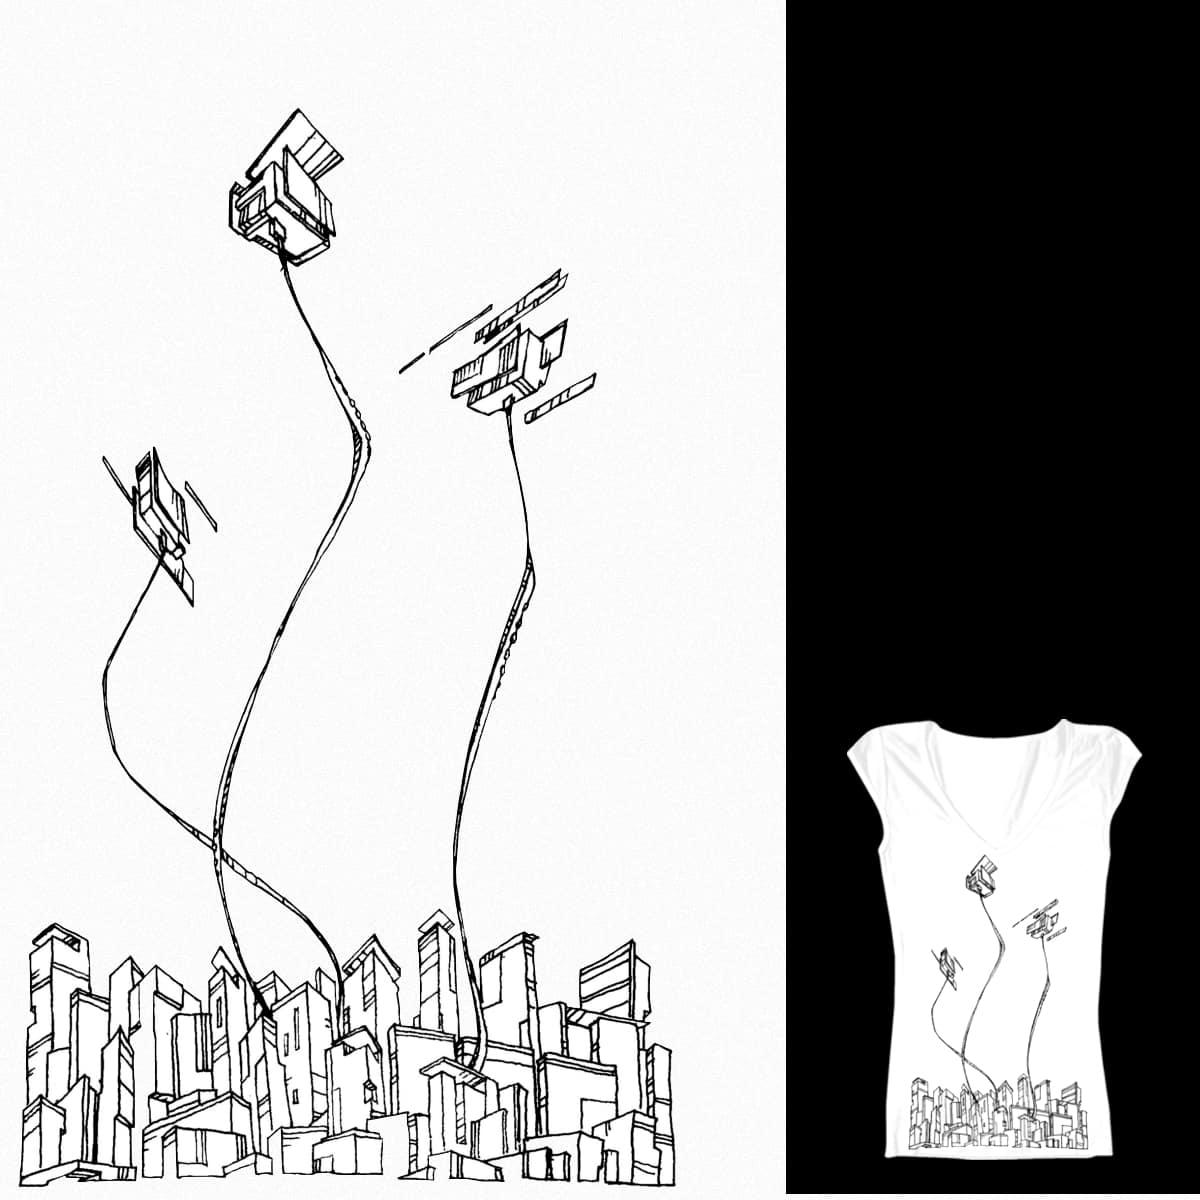 UP FROM THE CITY (B&W) by guibka on Threadless